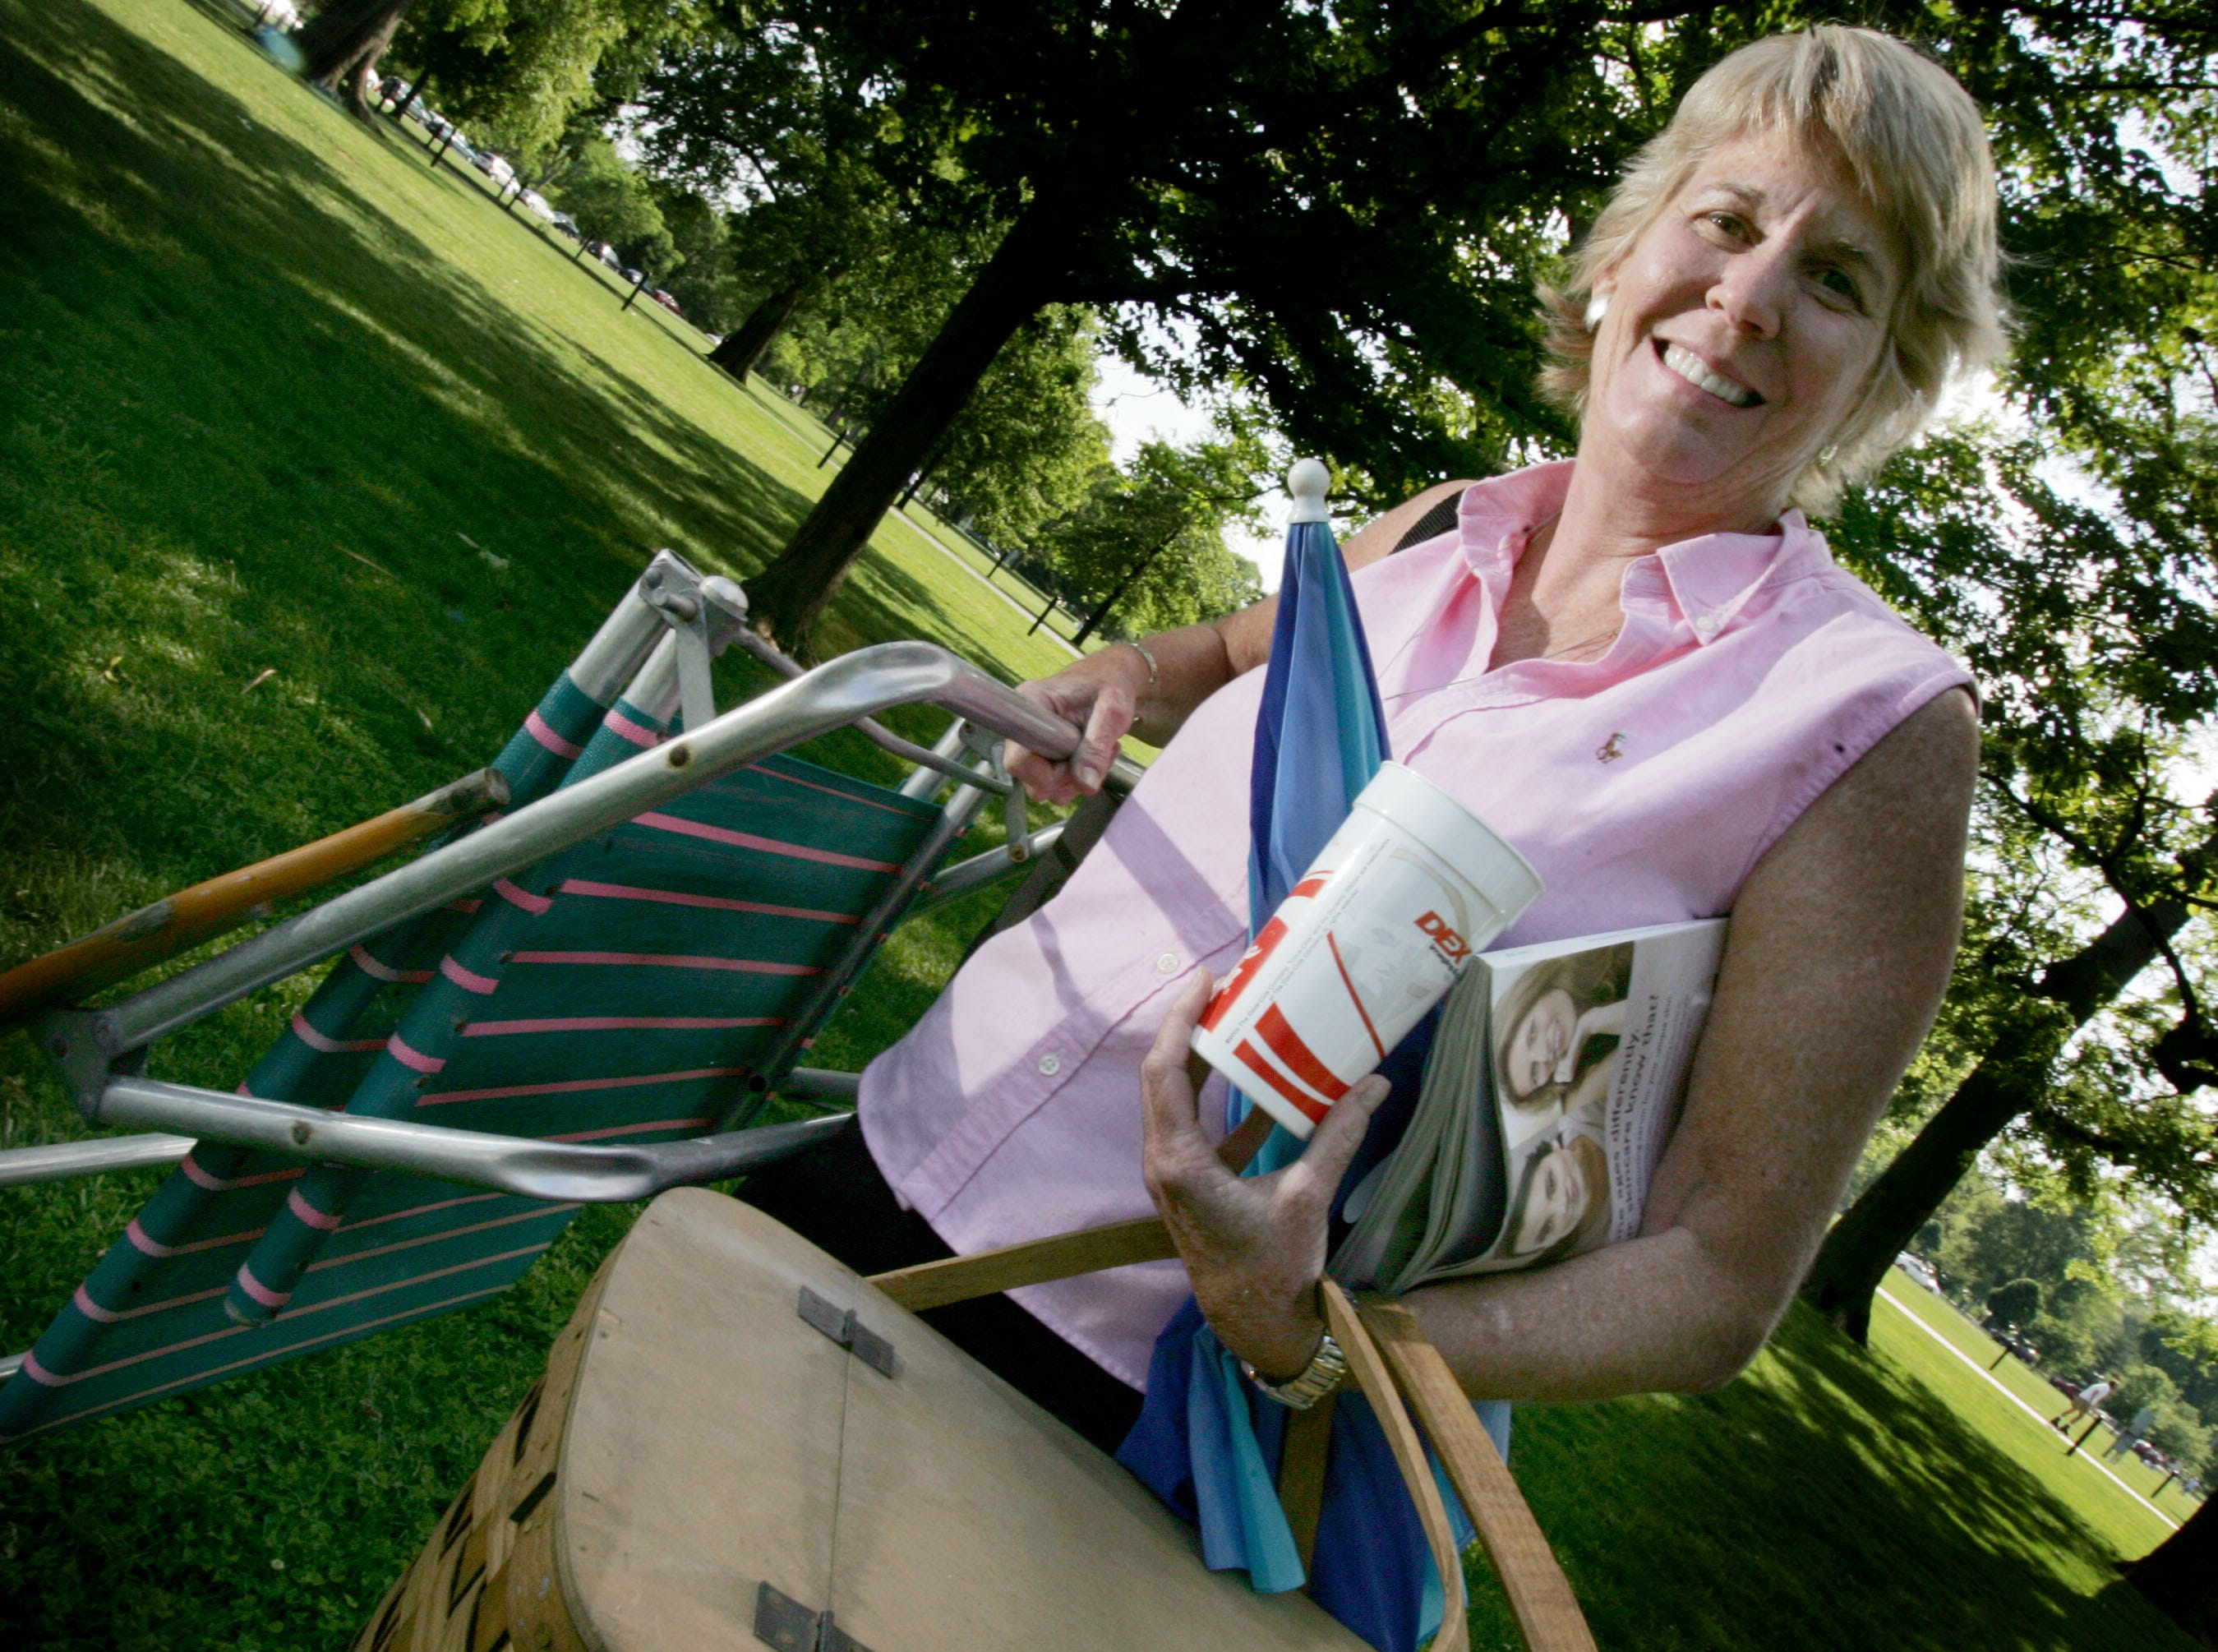 Mary Hance holds all her summer fun supplies in Centennial Park on May 16, 2007.